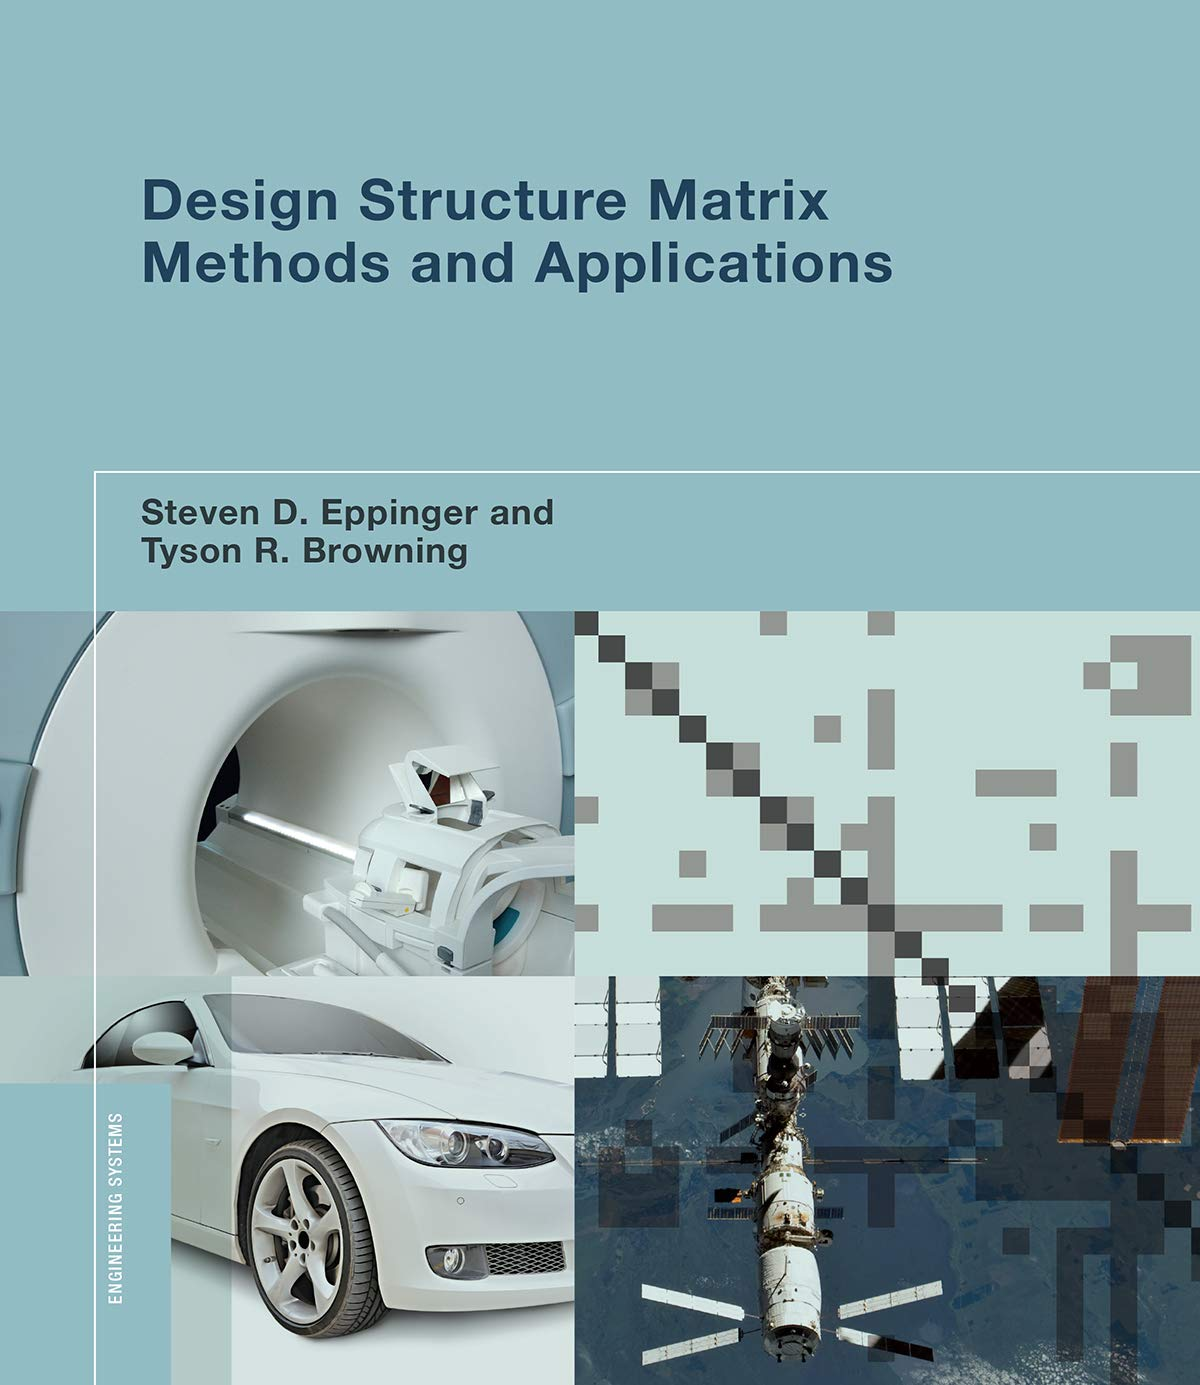 Download Design Structure Matrix Methods and Applications (Engineering Systems) ebook